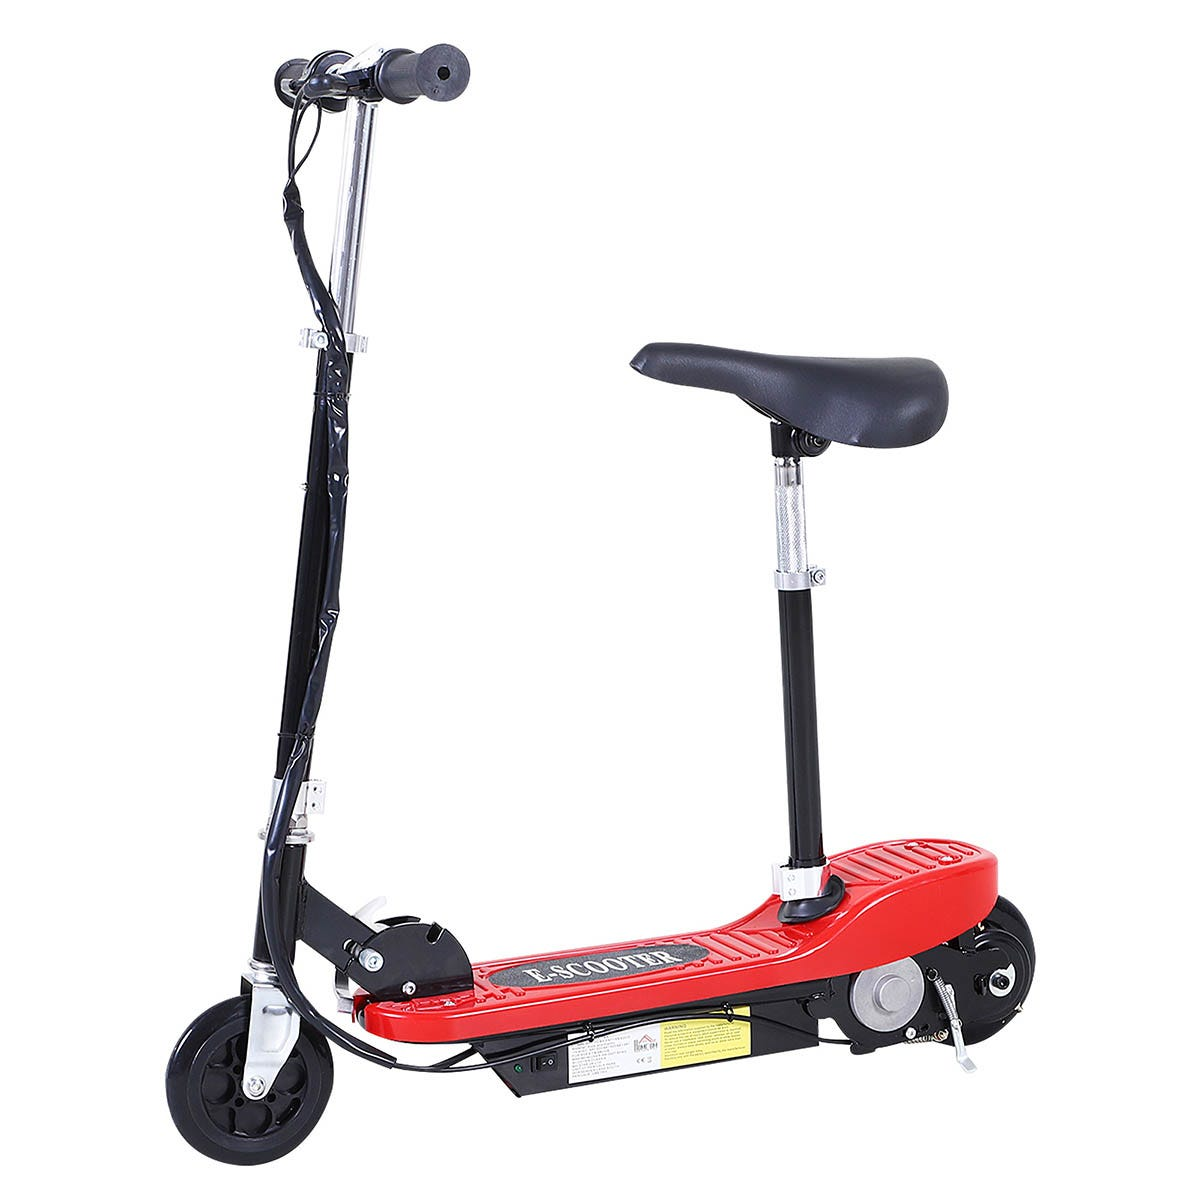 Reiten Kids Foldable E Scooter Electric 120W Toy with Brake Kickstand - Red